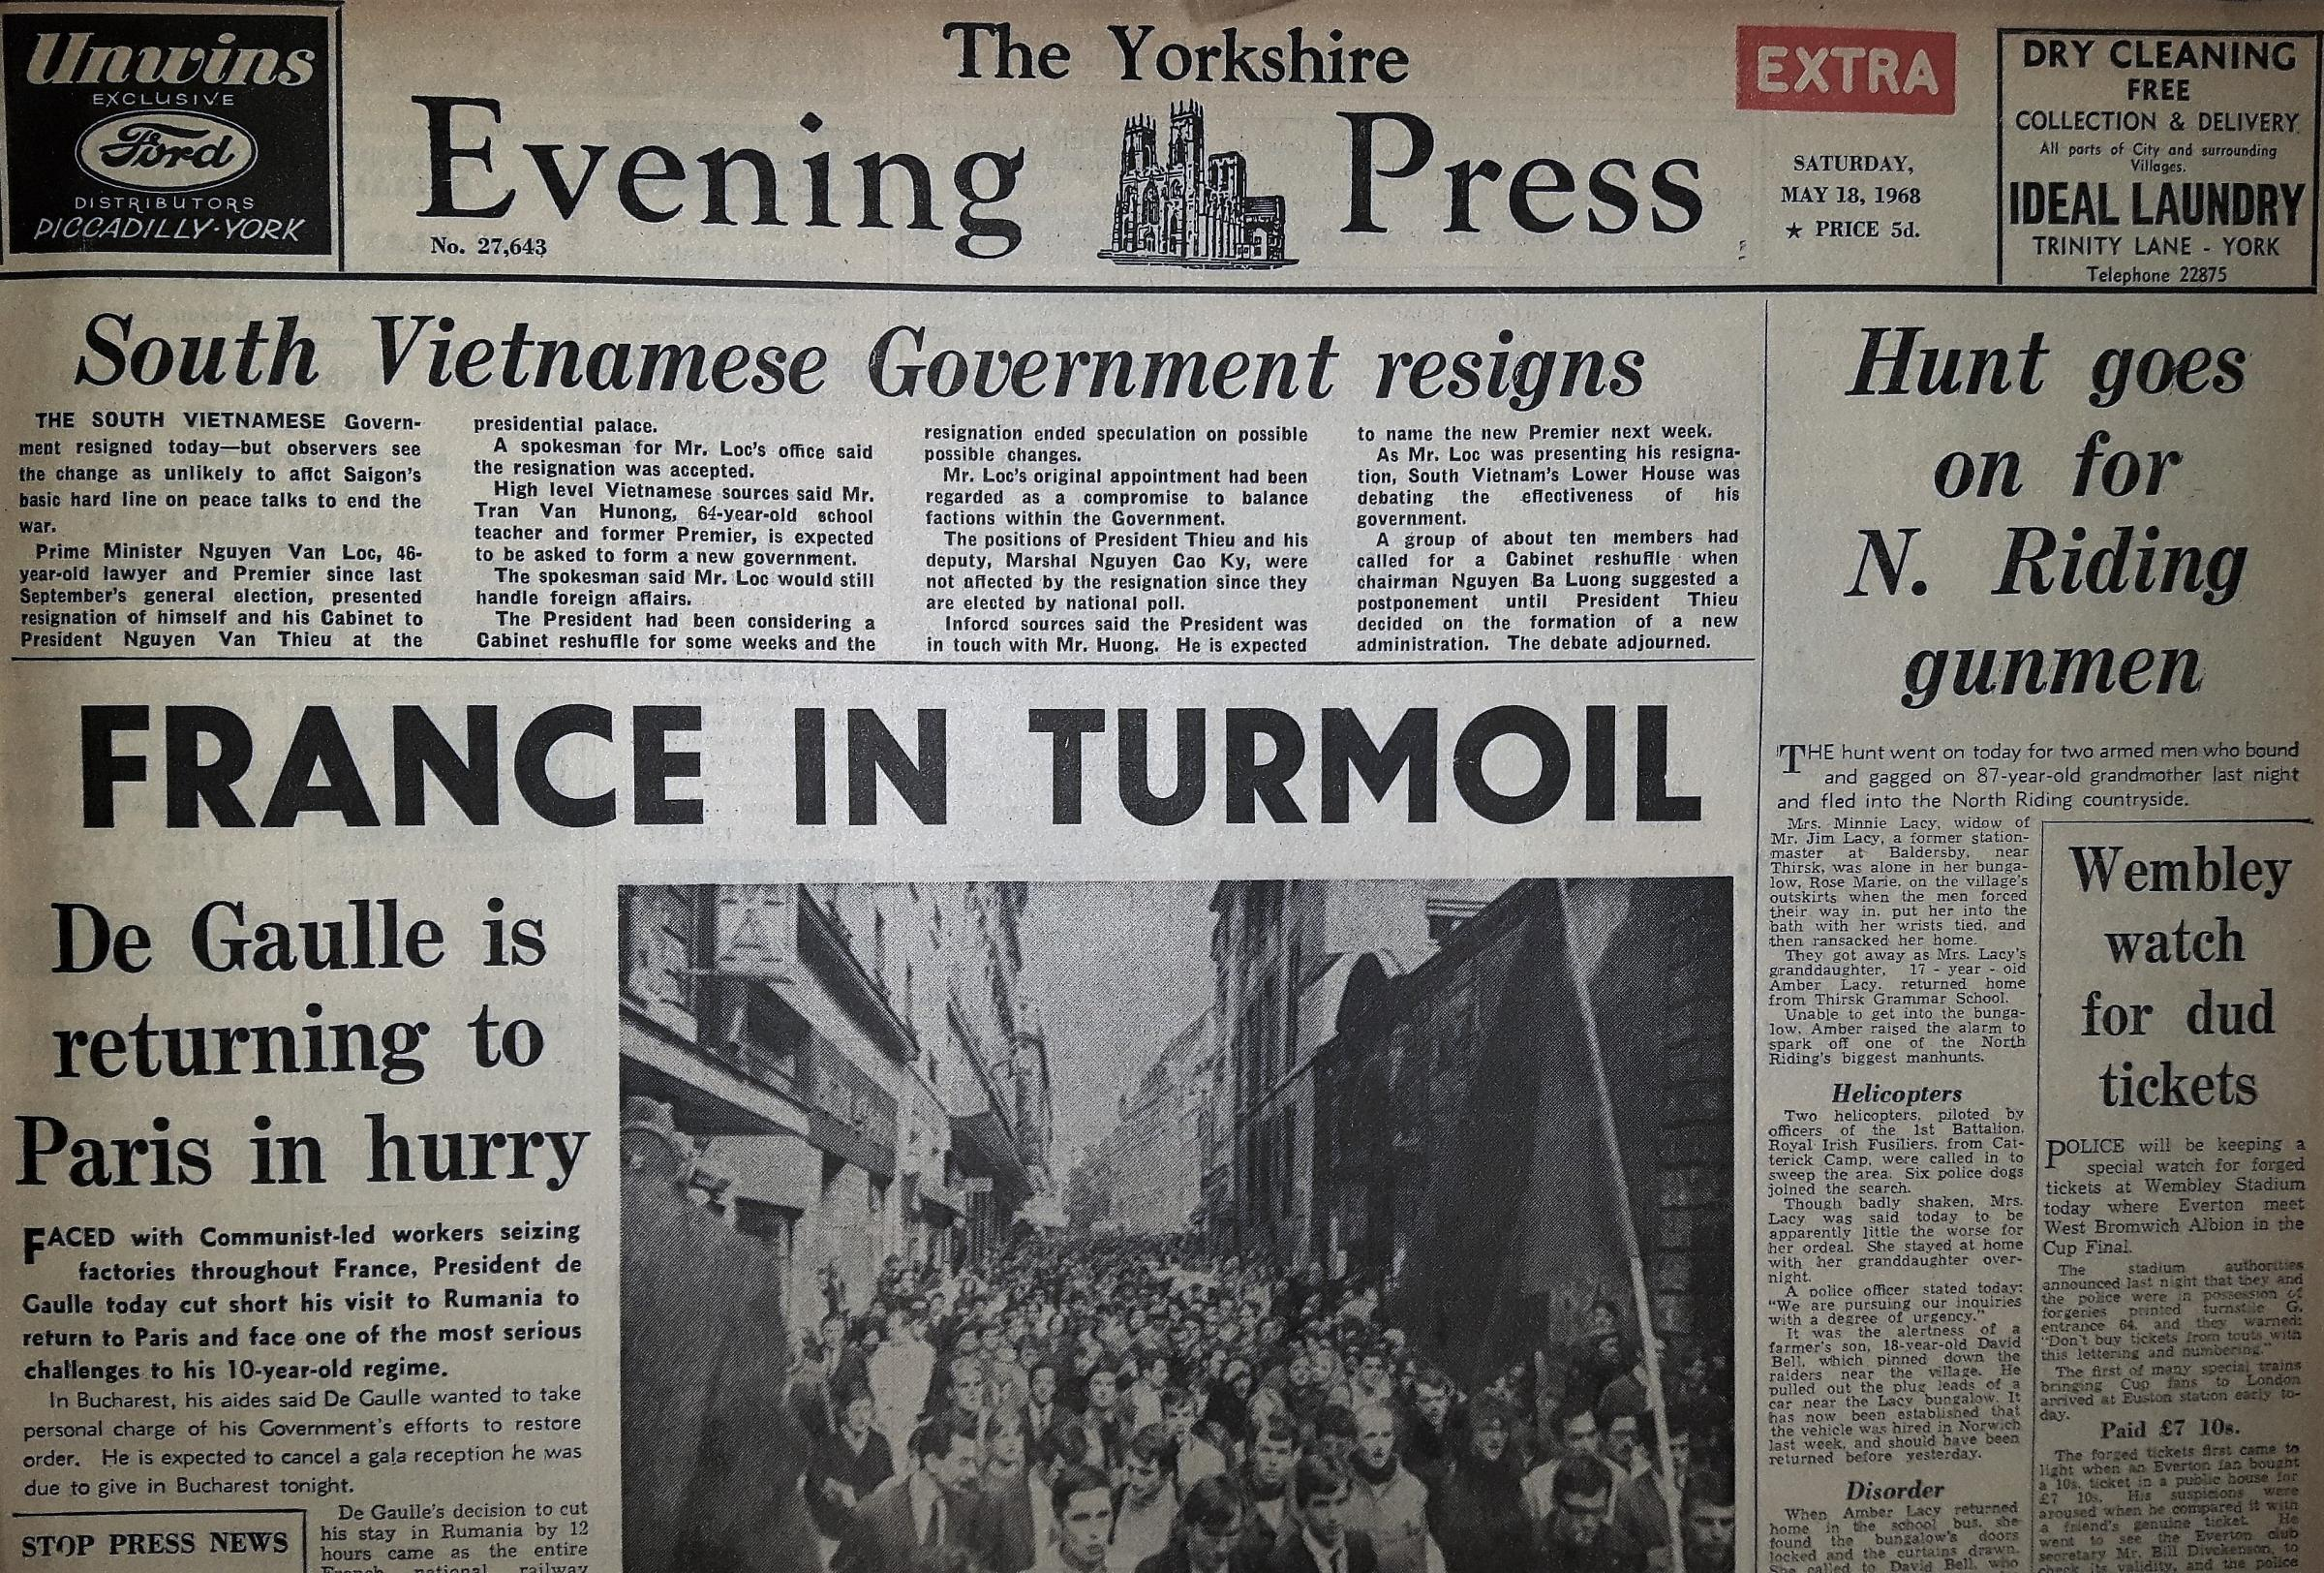 The Yorkshire Evening Press front page from May 18, 1968